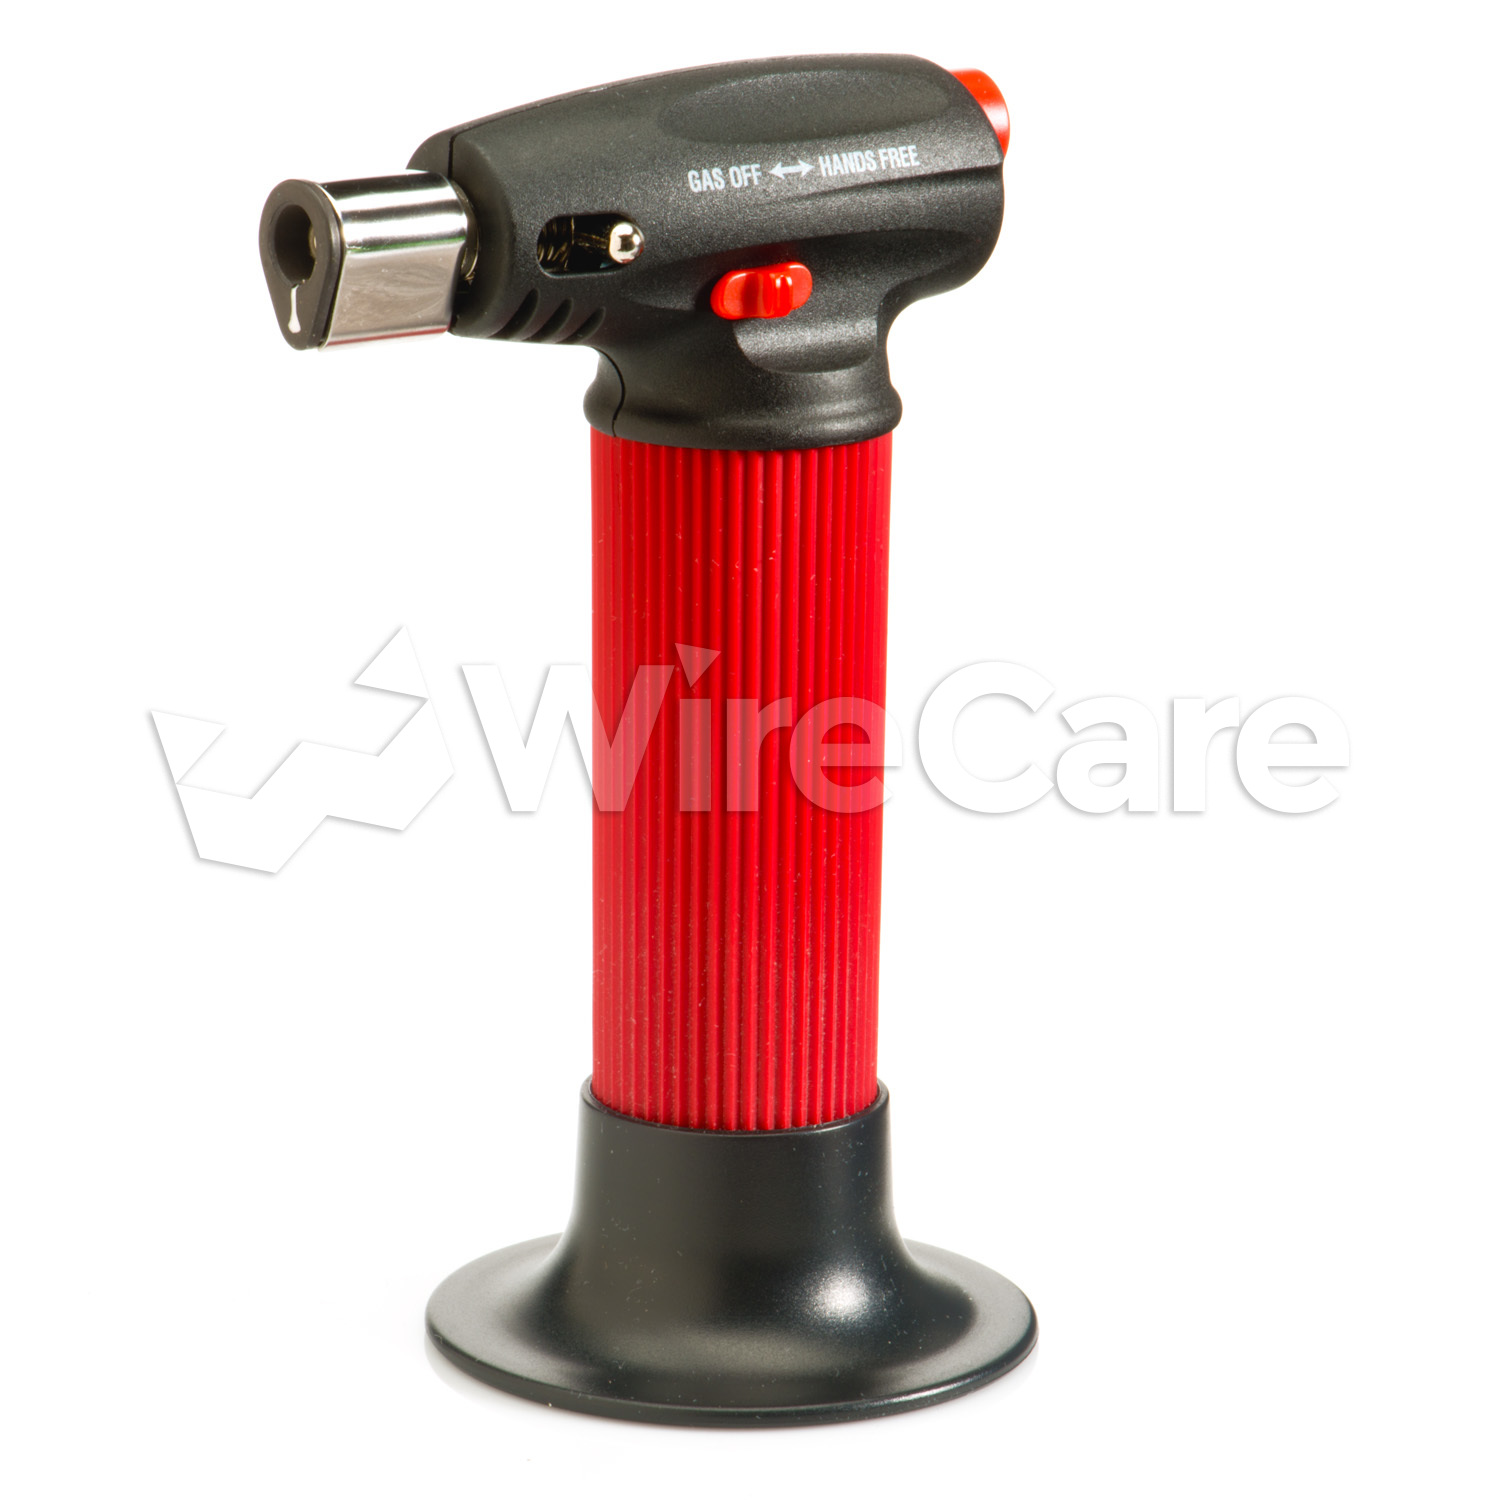 MT-51 - Master Appliance Master Microtorch MT-51